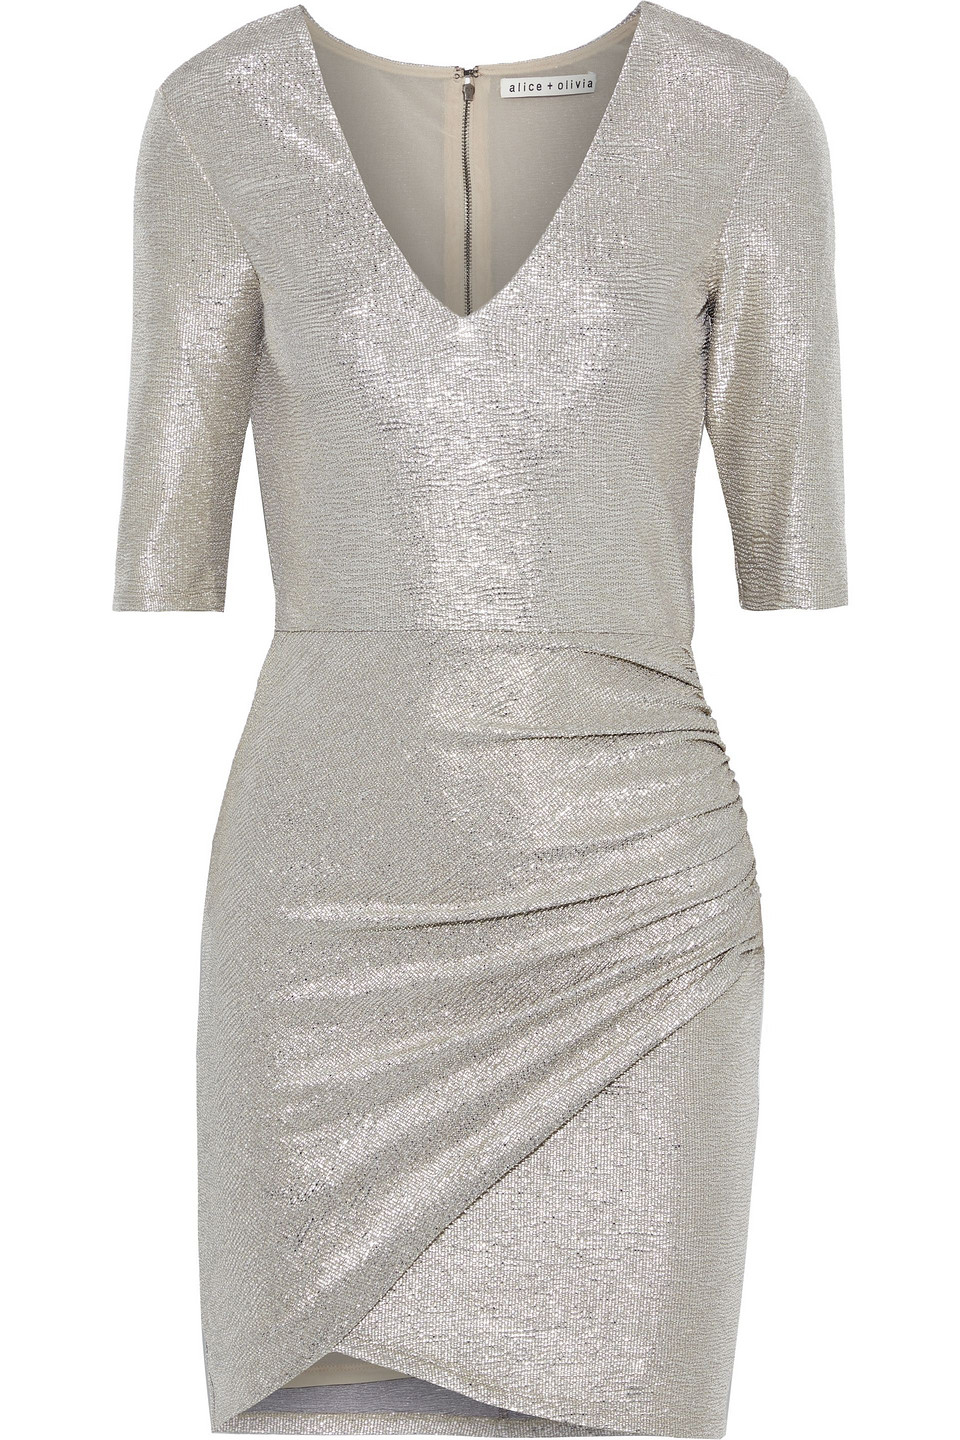 Alice + Olivia | Alice + Olivia Woman Judy Ruched Textured Stretch-lame Mini Dress Gray | Clouty